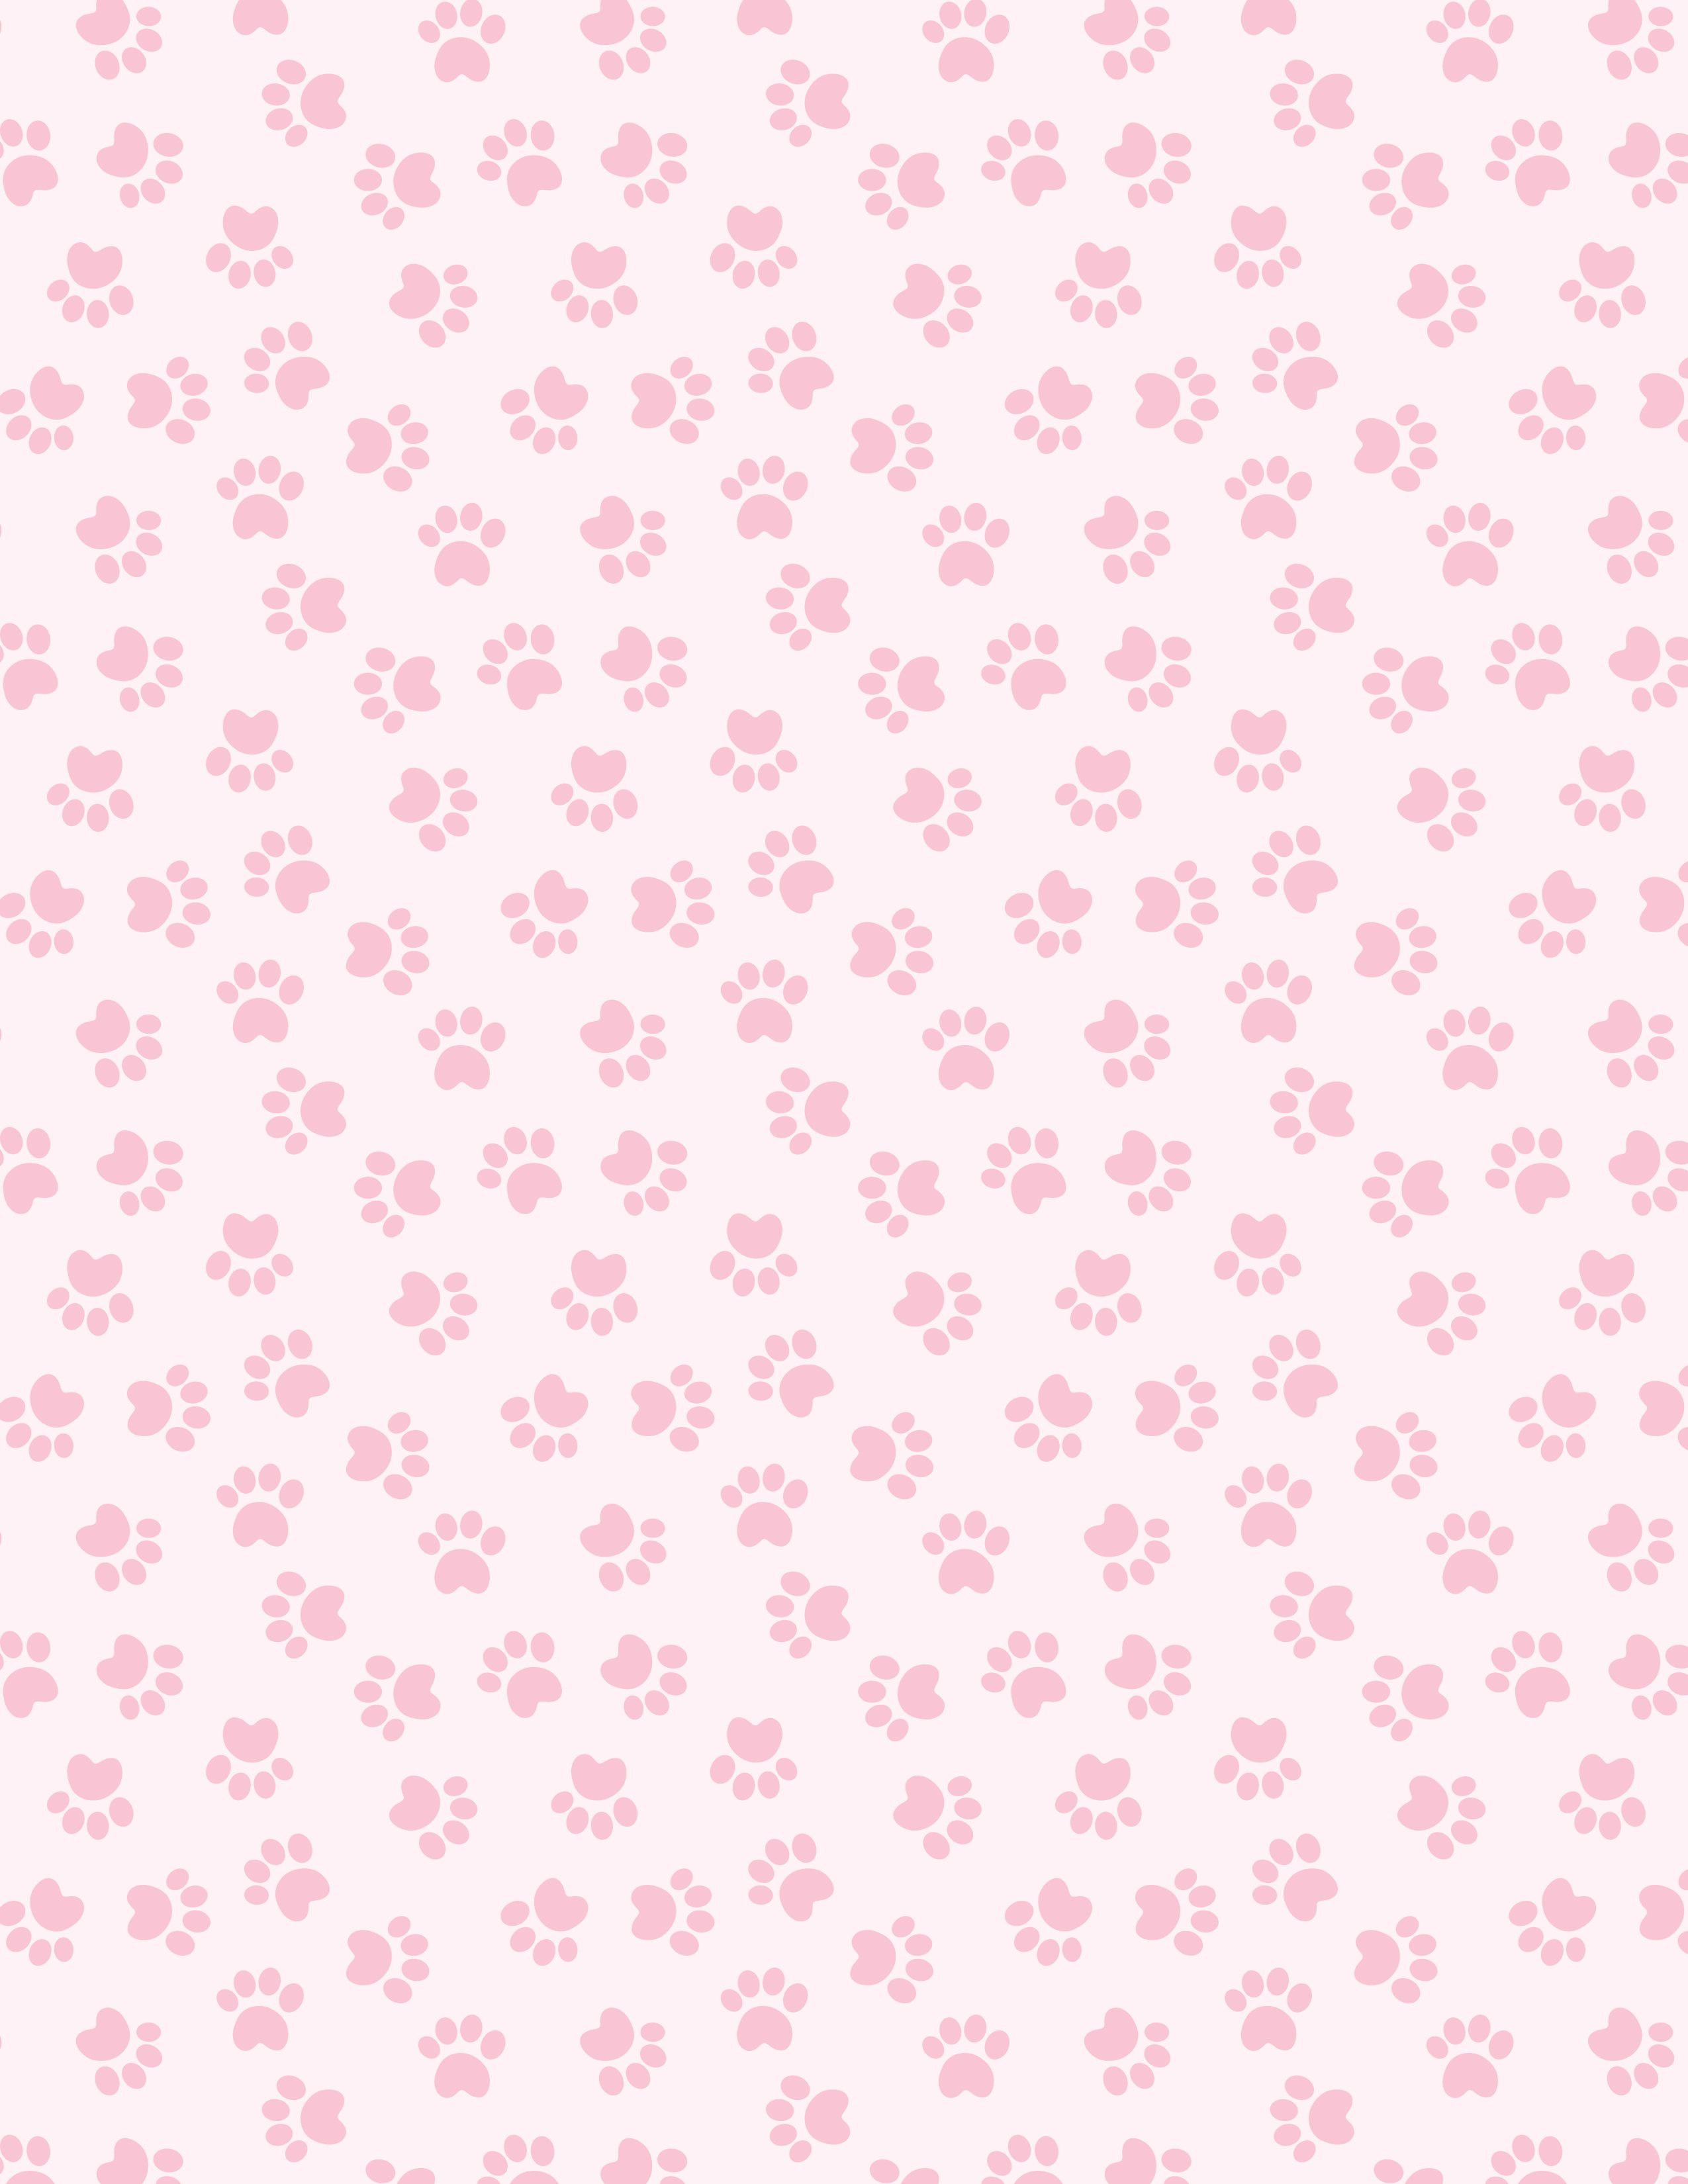 Scrapbook paper dogs - Pale Pink Paw Print Paper Pattern Might Work For Animals Besides Dogs And Cats